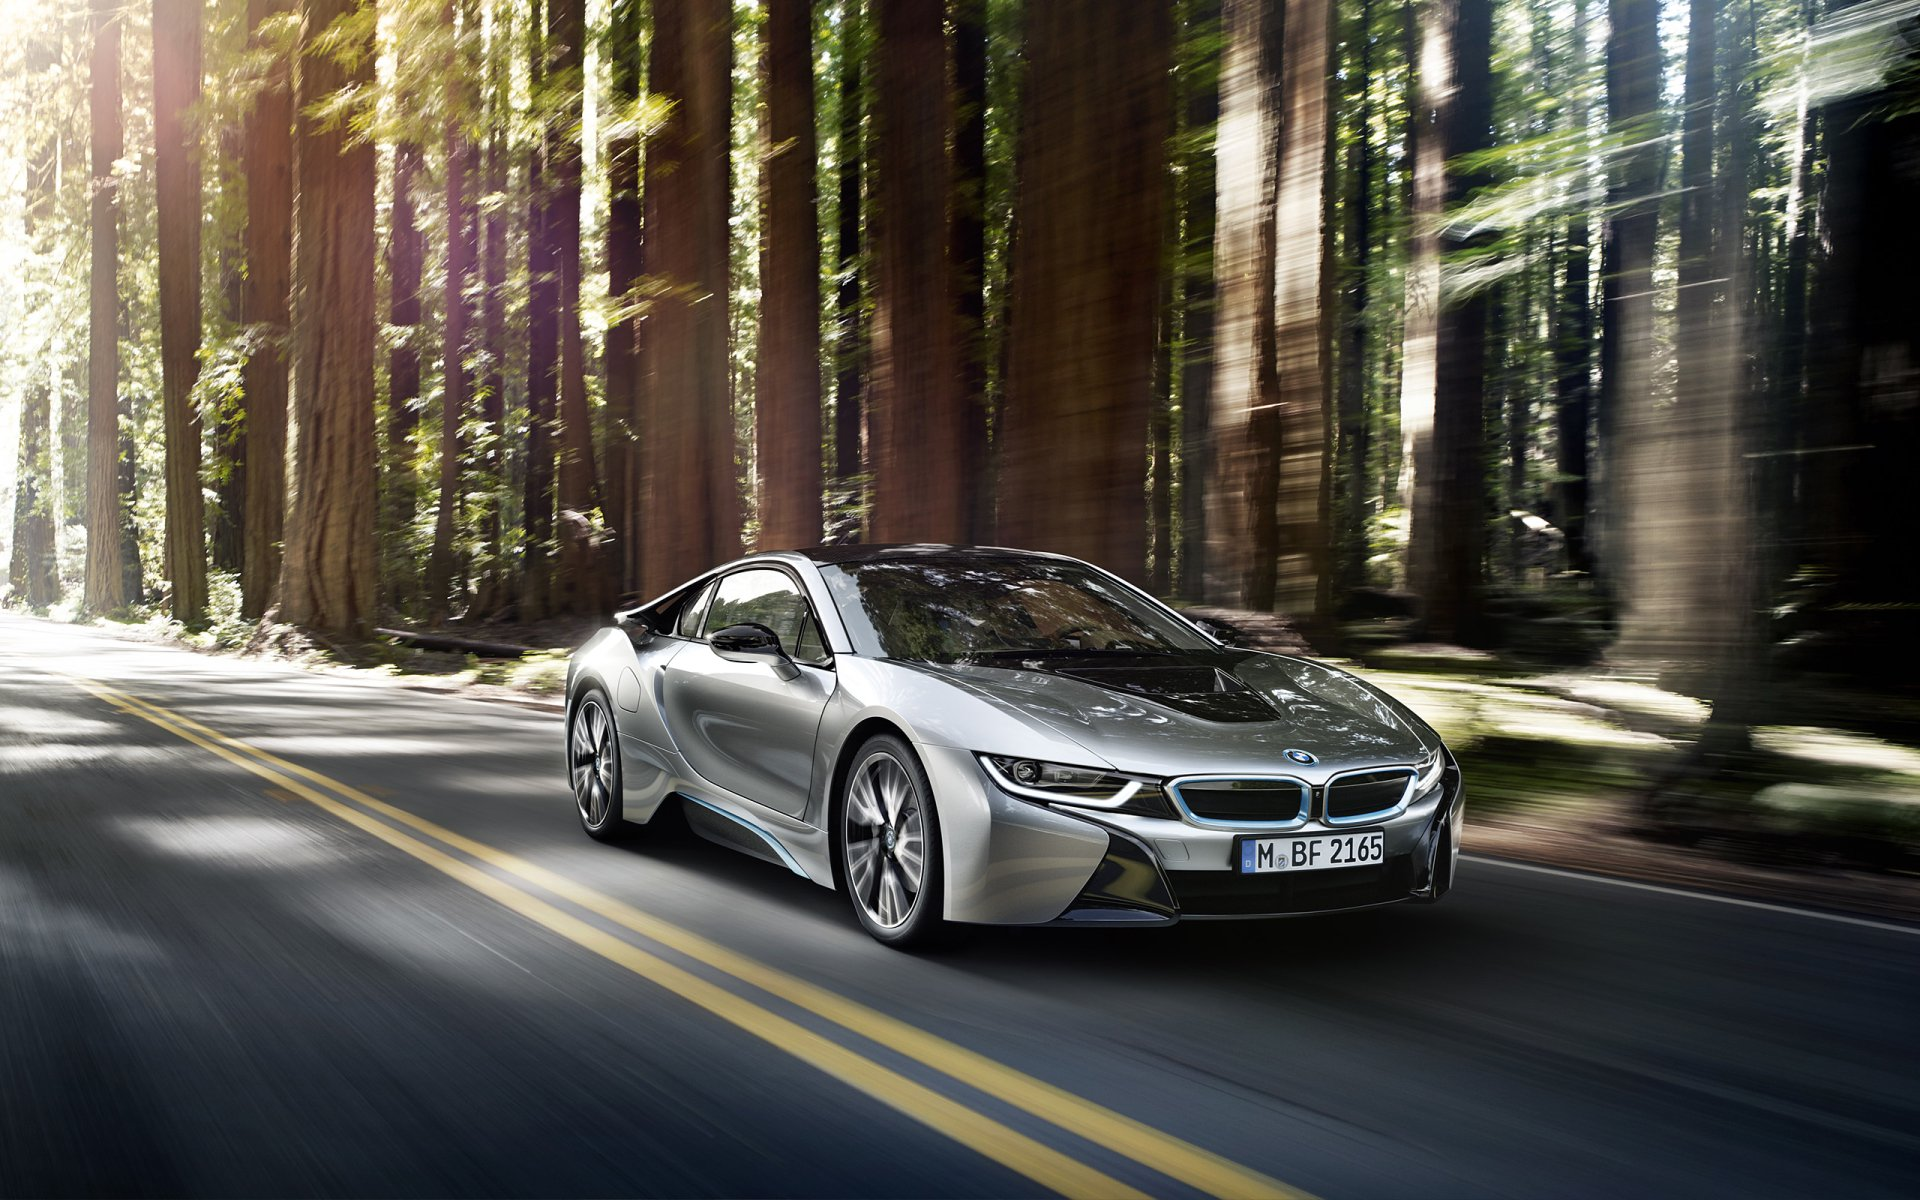 Vehicles - BMW i8  BMW Wallpaper